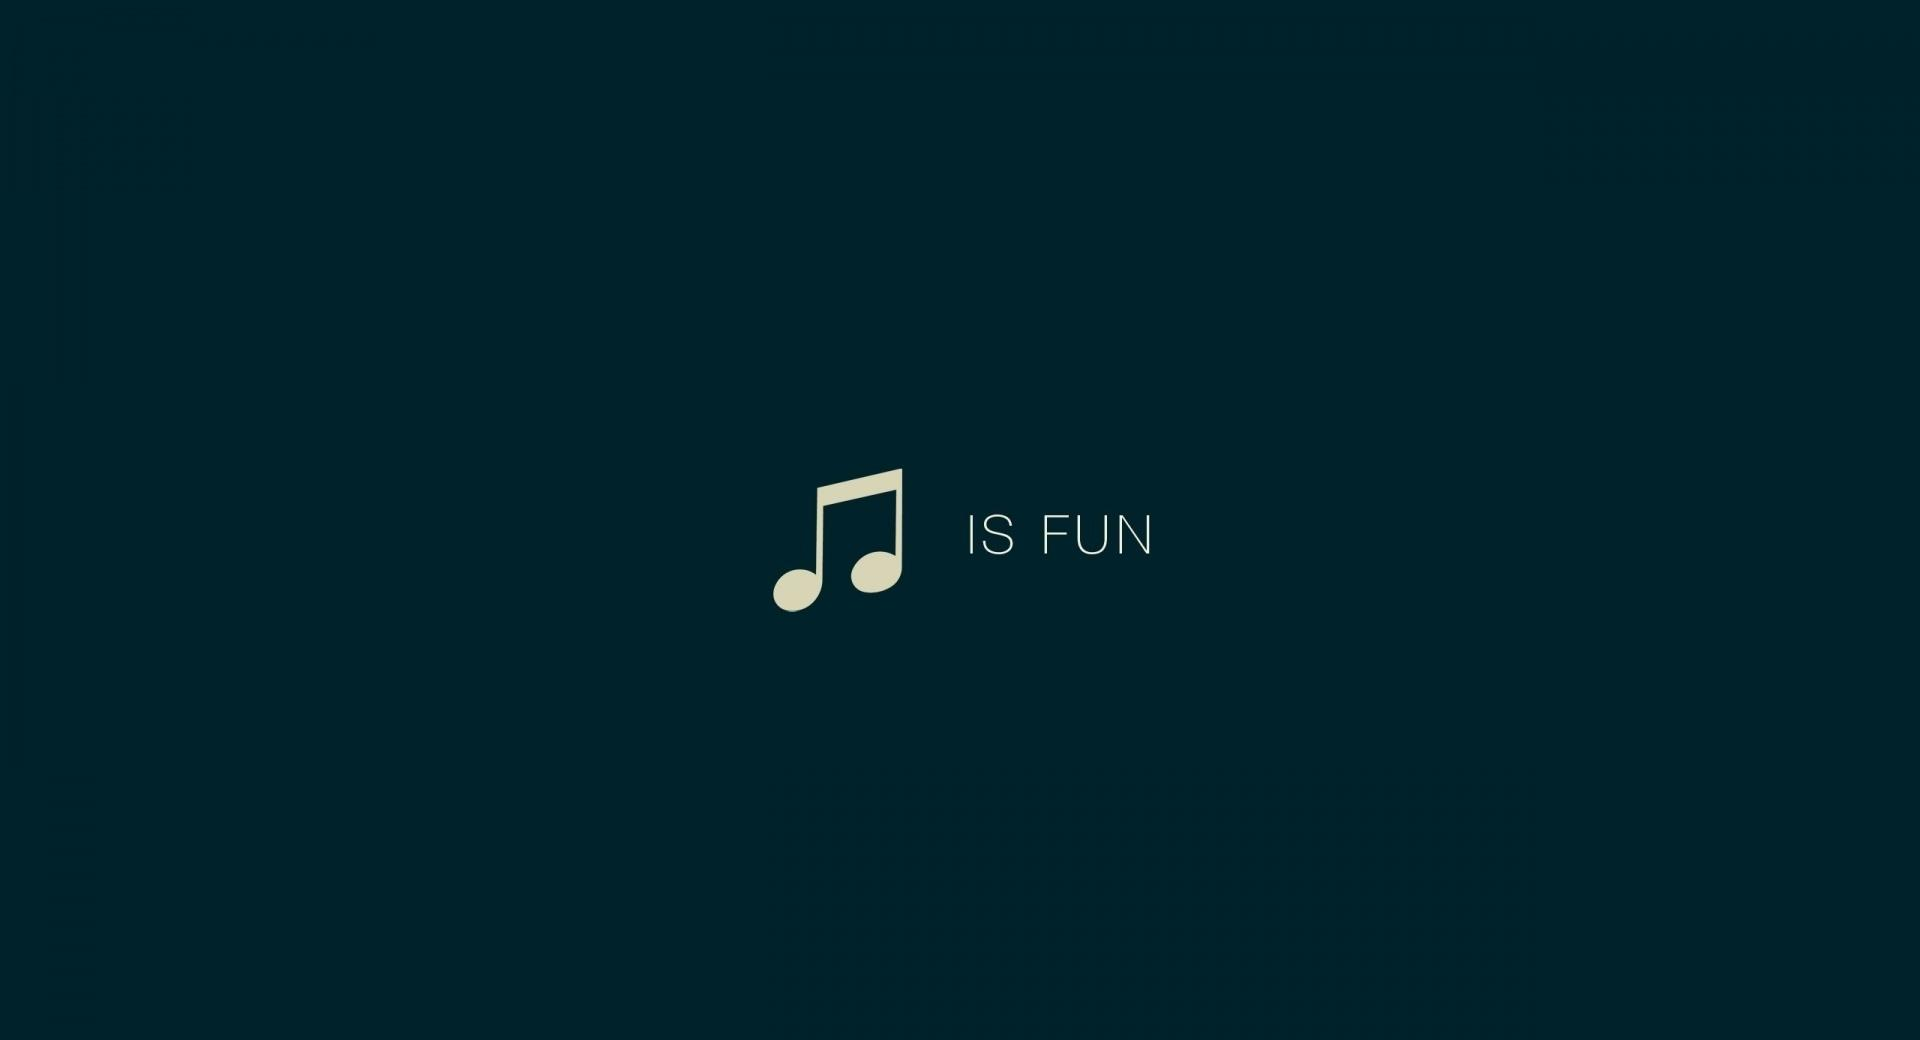 Music Is Fun at 1024 x 1024 iPad size wallpapers HD quality